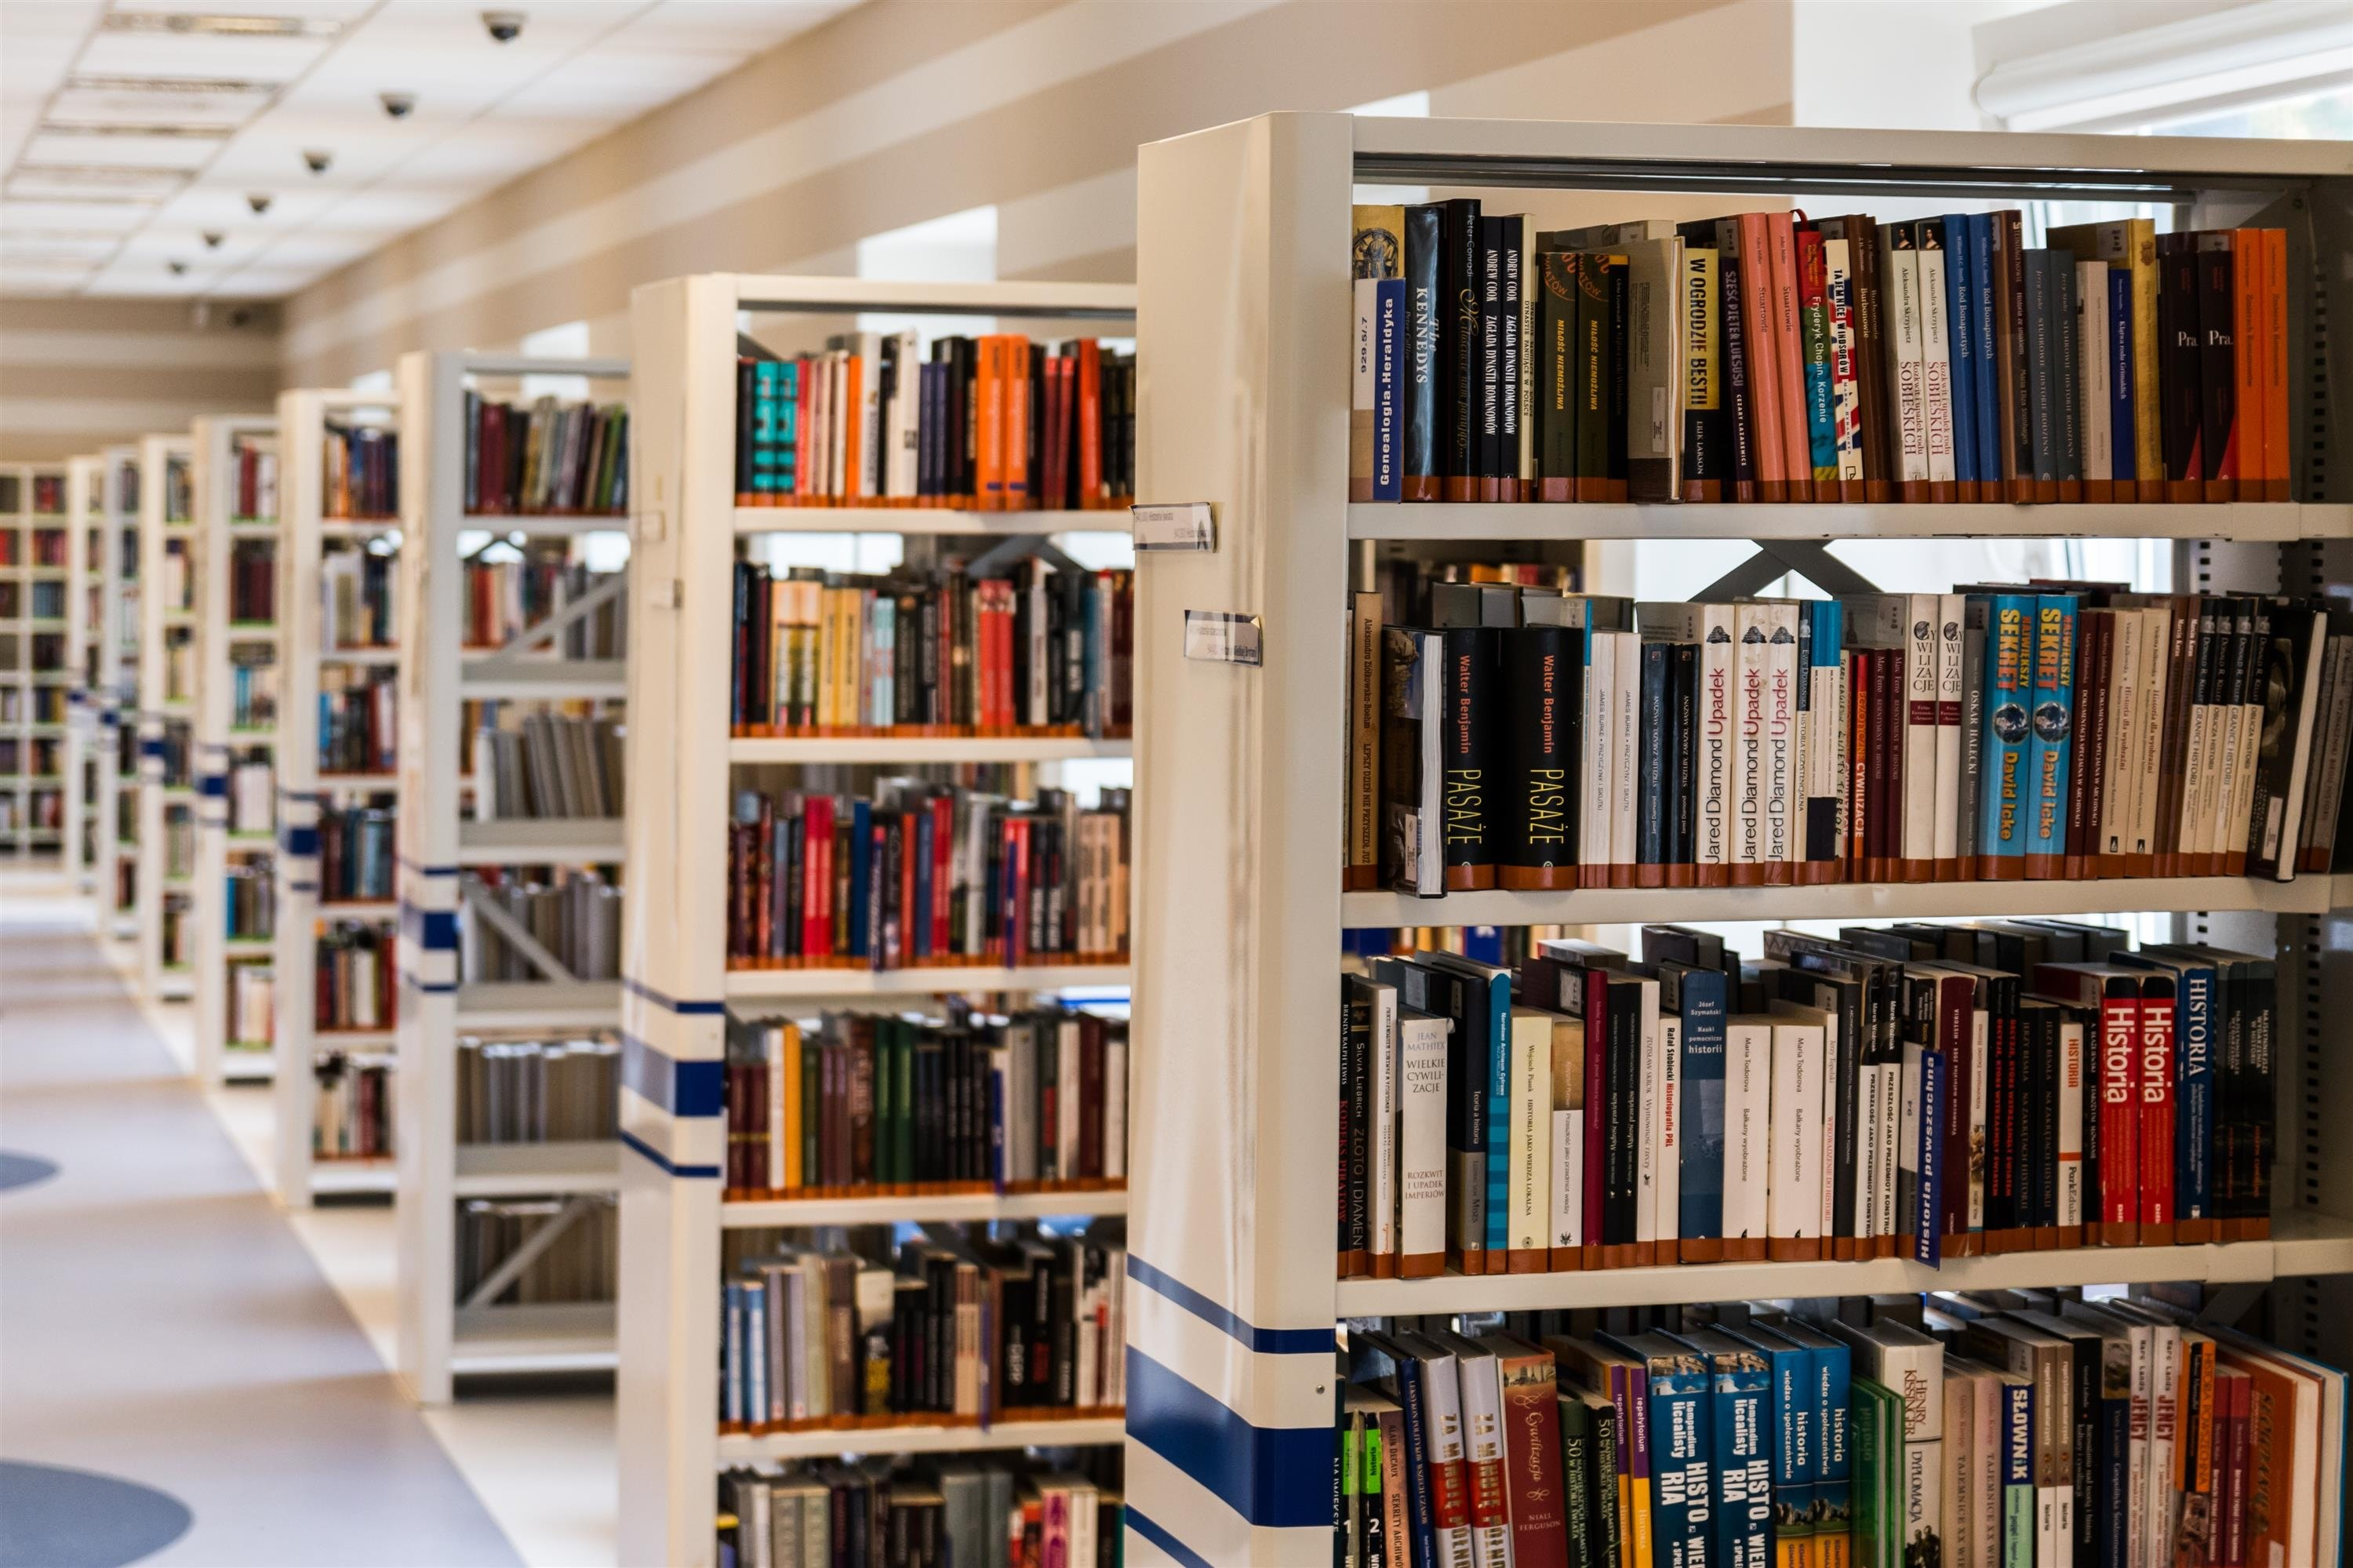 row-of-books-in-shelf-256541.jpg